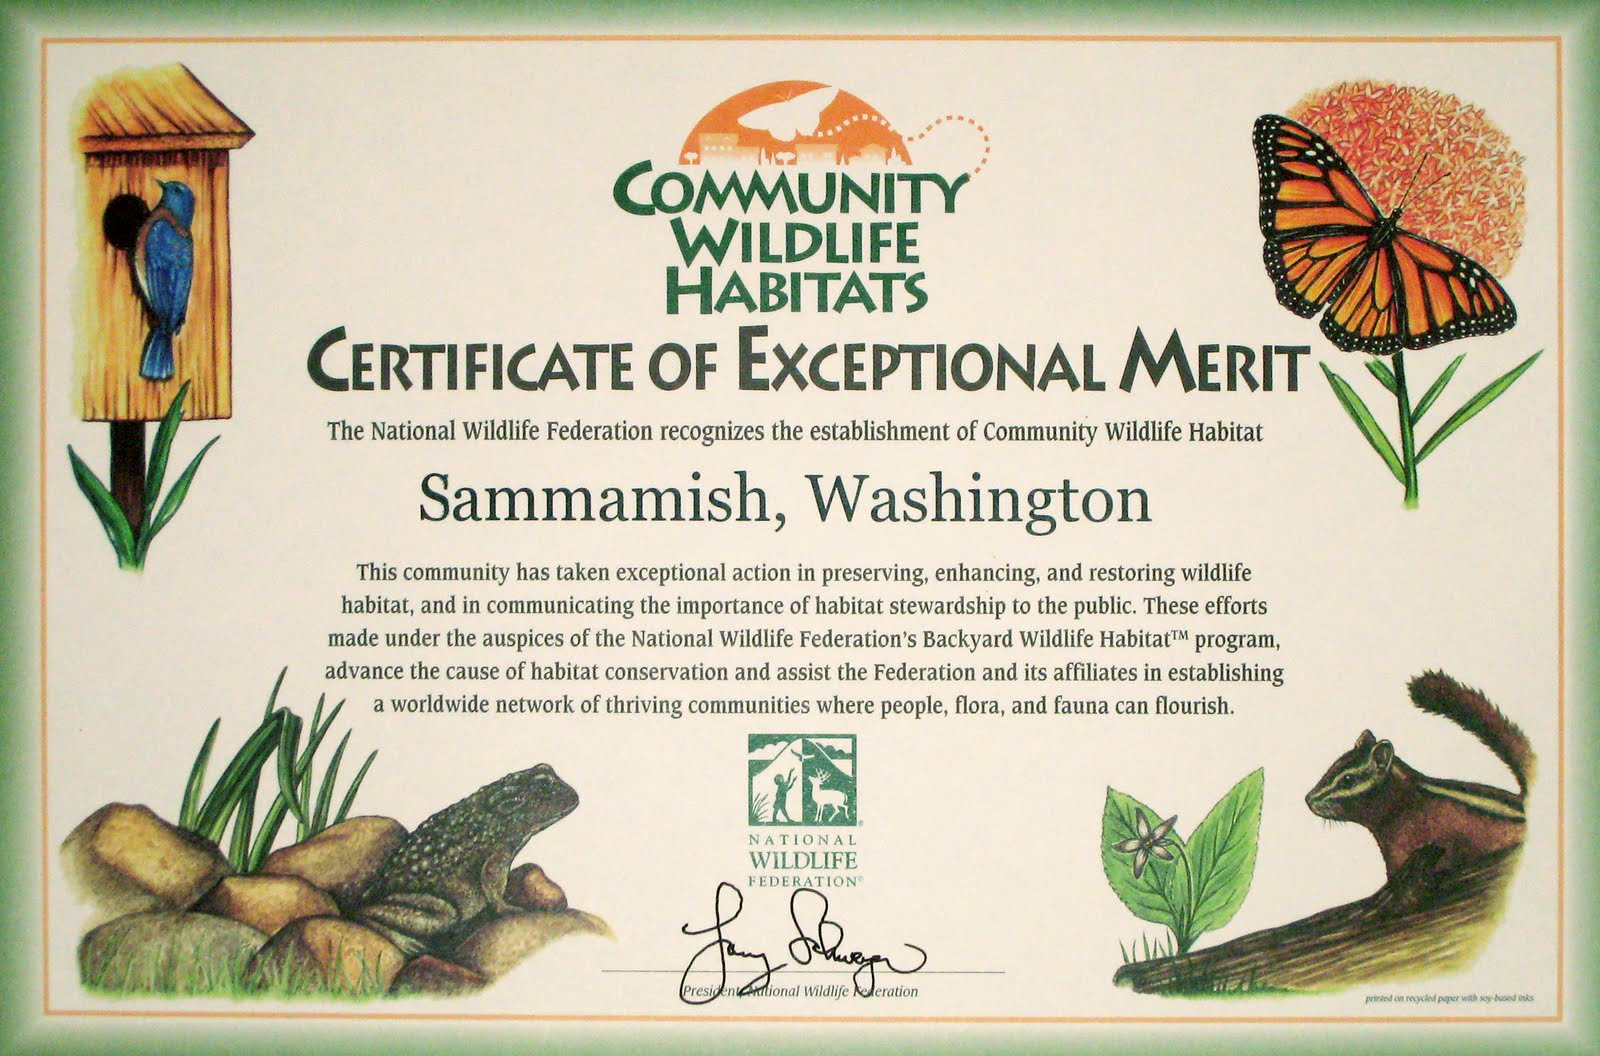 sammamish community wildlife habitat project celebrating